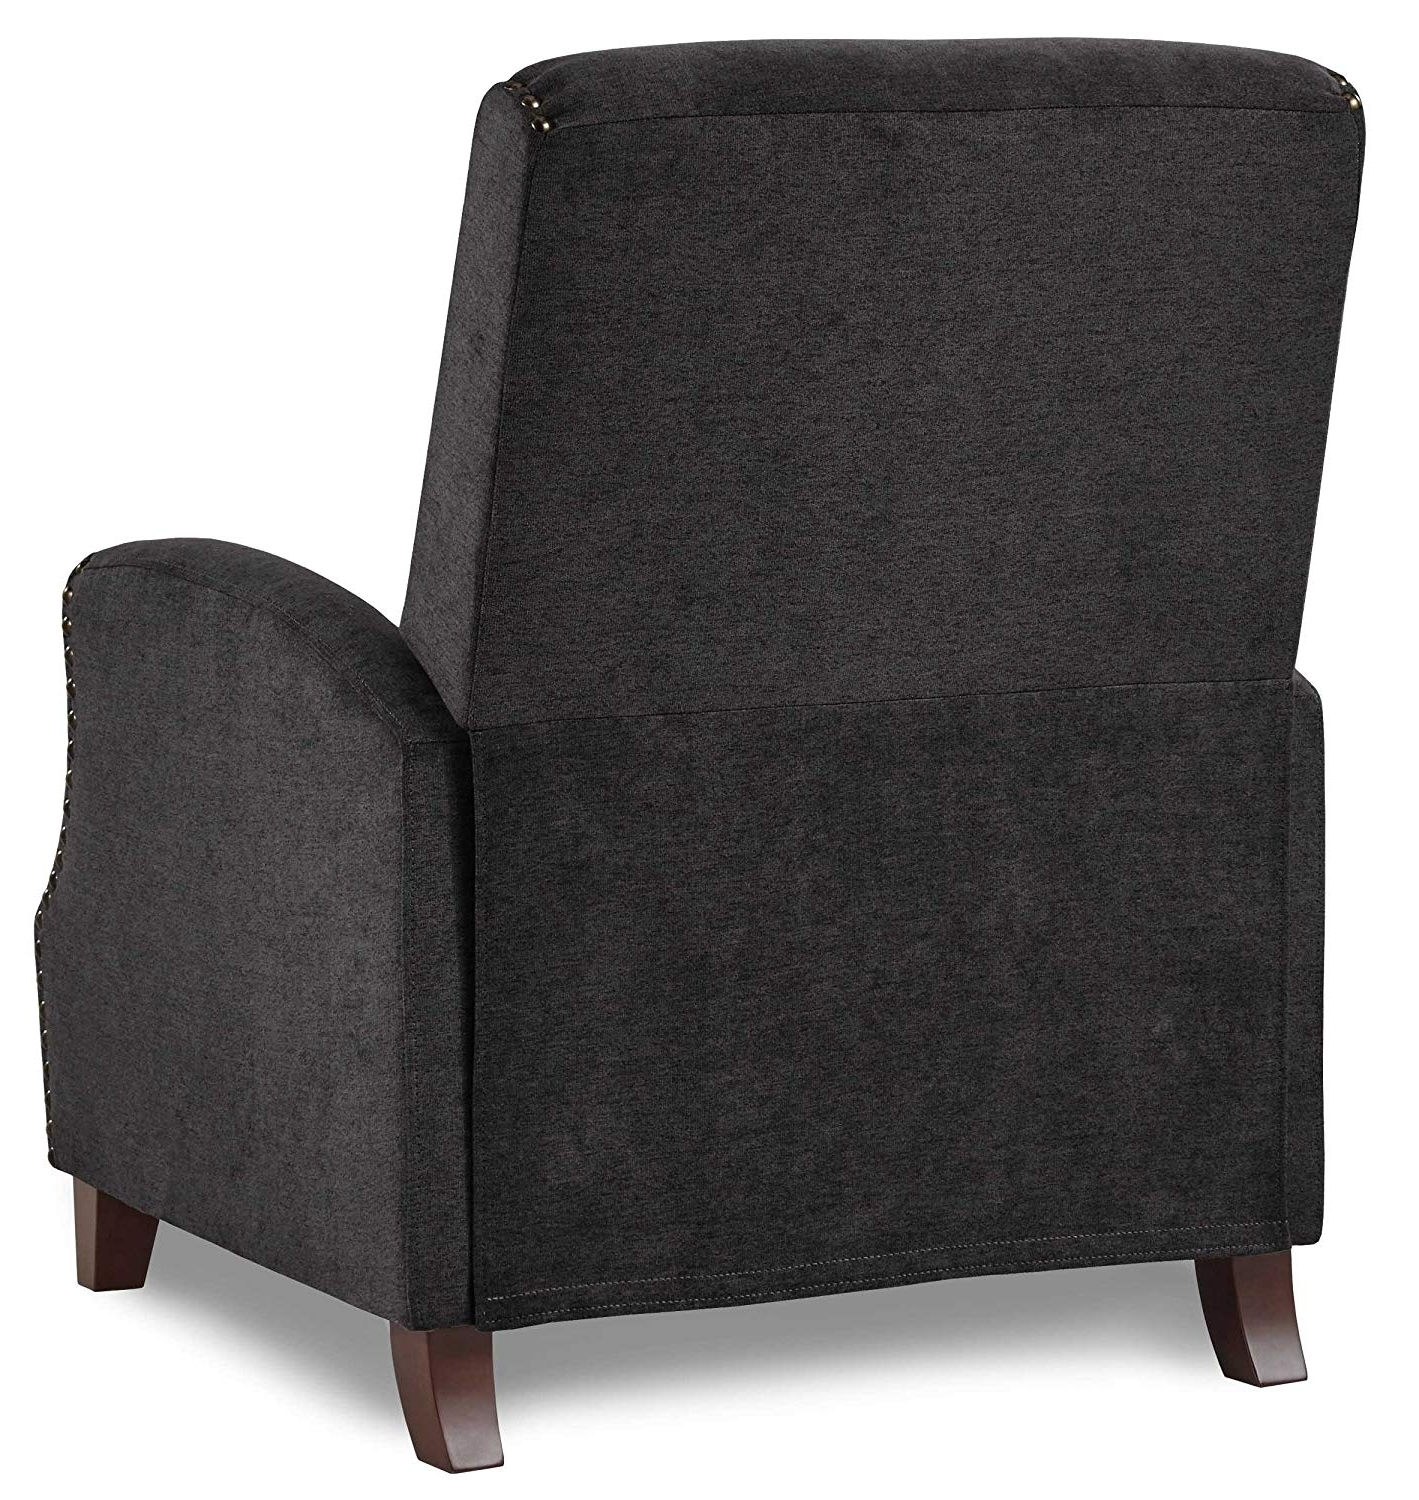 Favorite Walden Upholstered Arm Chairs Intended For Amazon: Homelegance Walden Push Back Fabric Recliner, Gray (View 4 of 20)